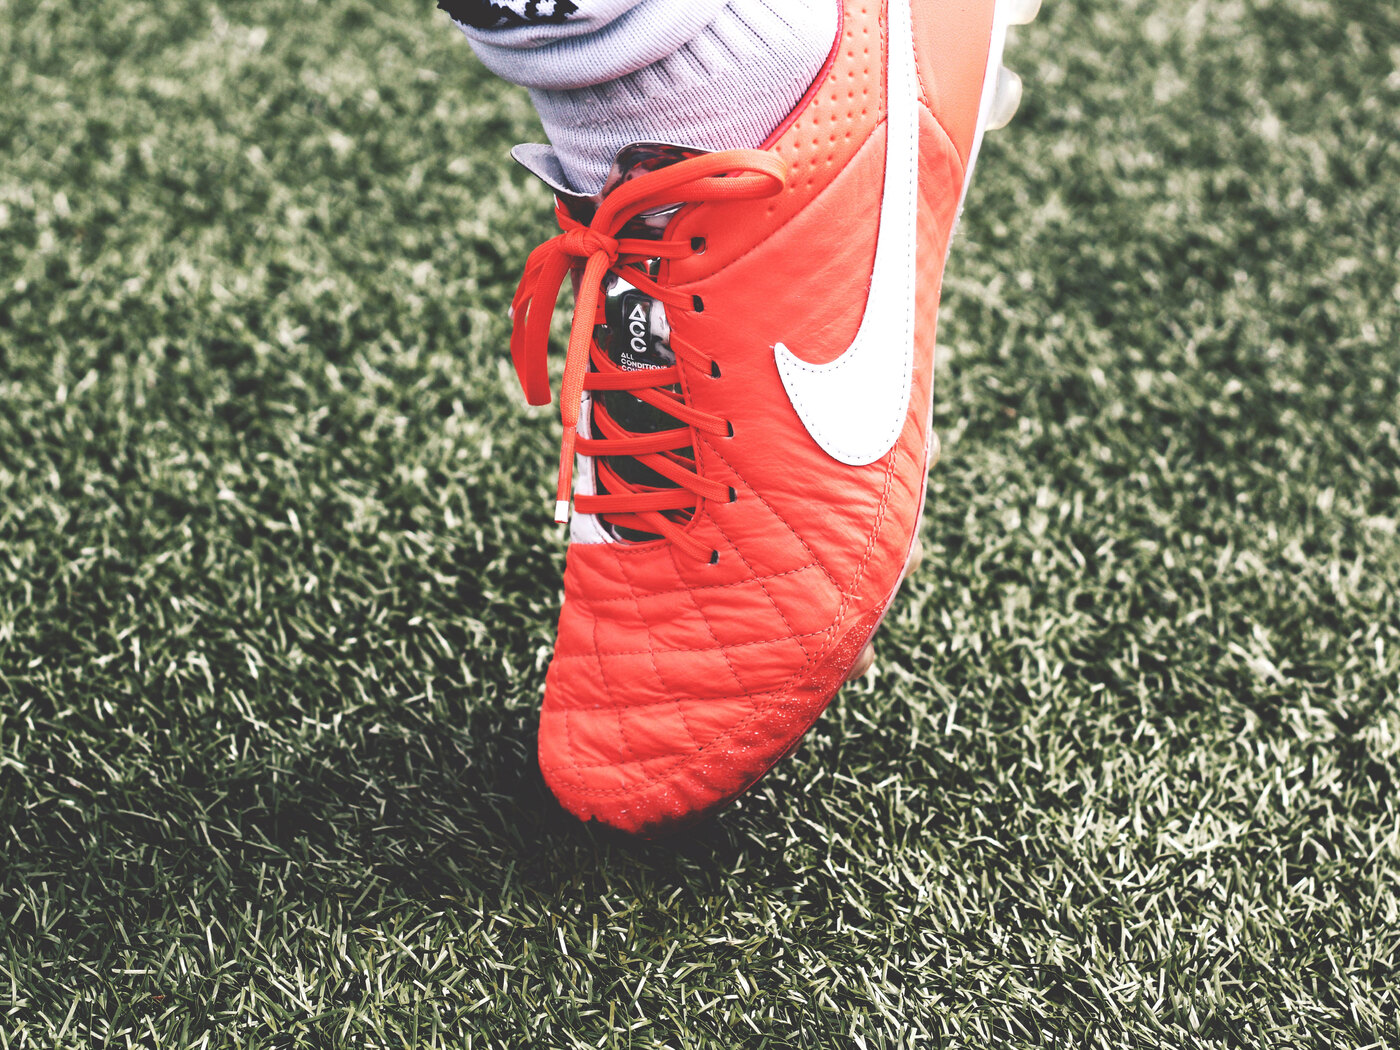 nike-shoes-ground-football-2s.jpg